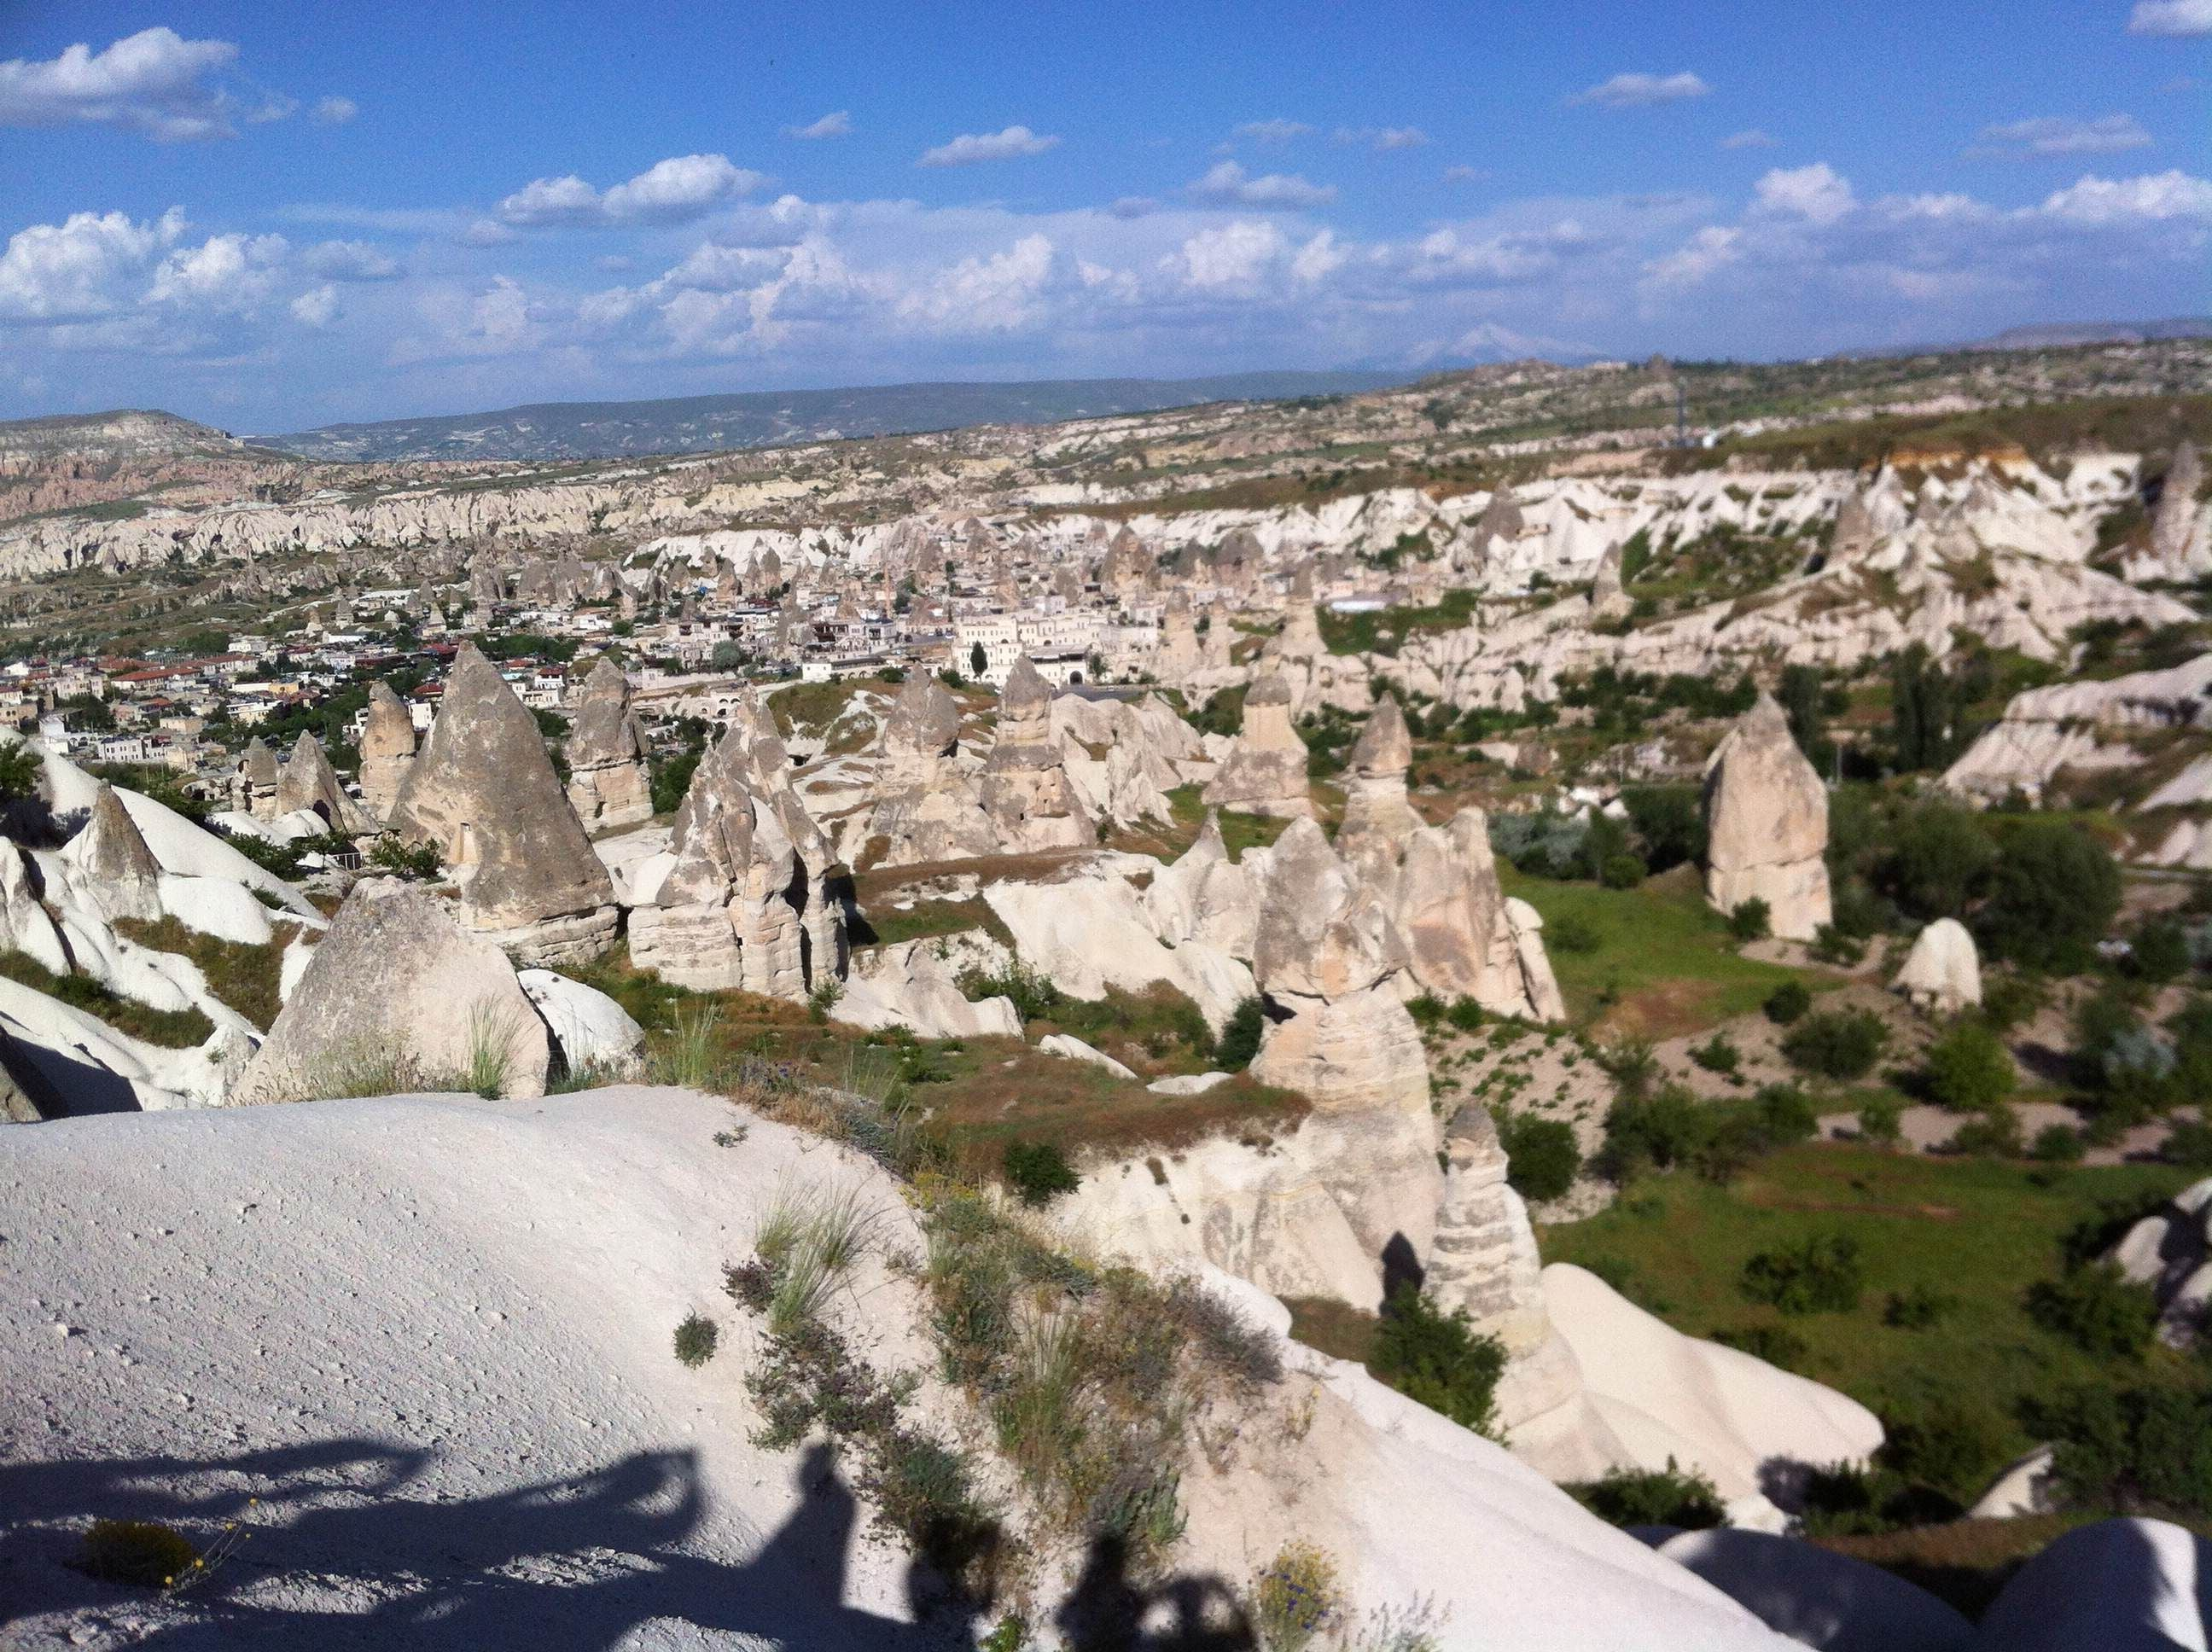 Nieve en Mirador de Göreme - Sunset Point